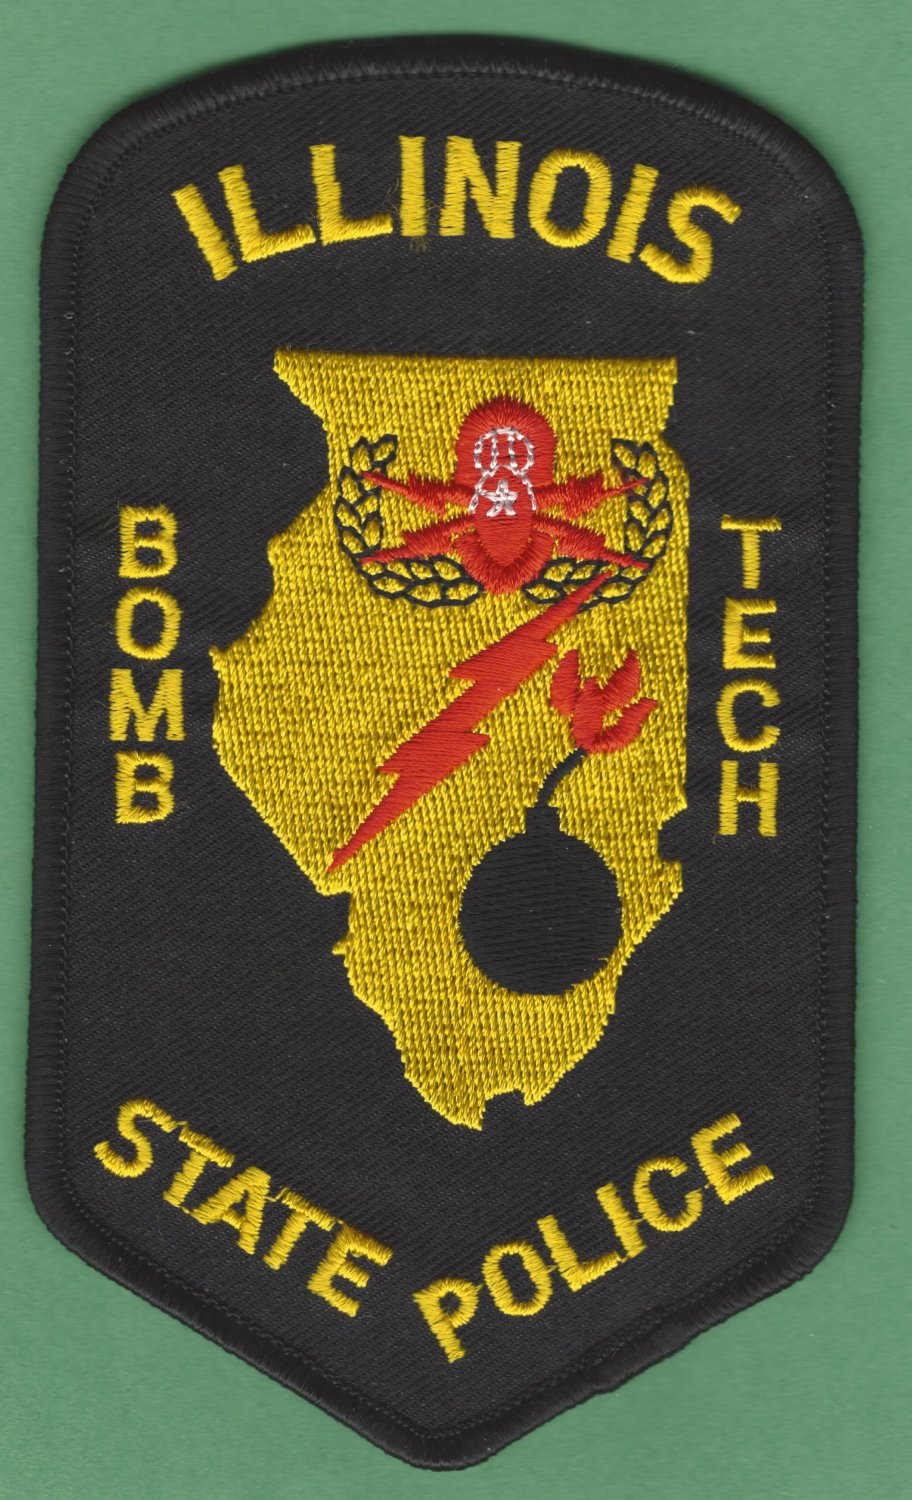 Illinois State Police Bomb Squad Technician Patch